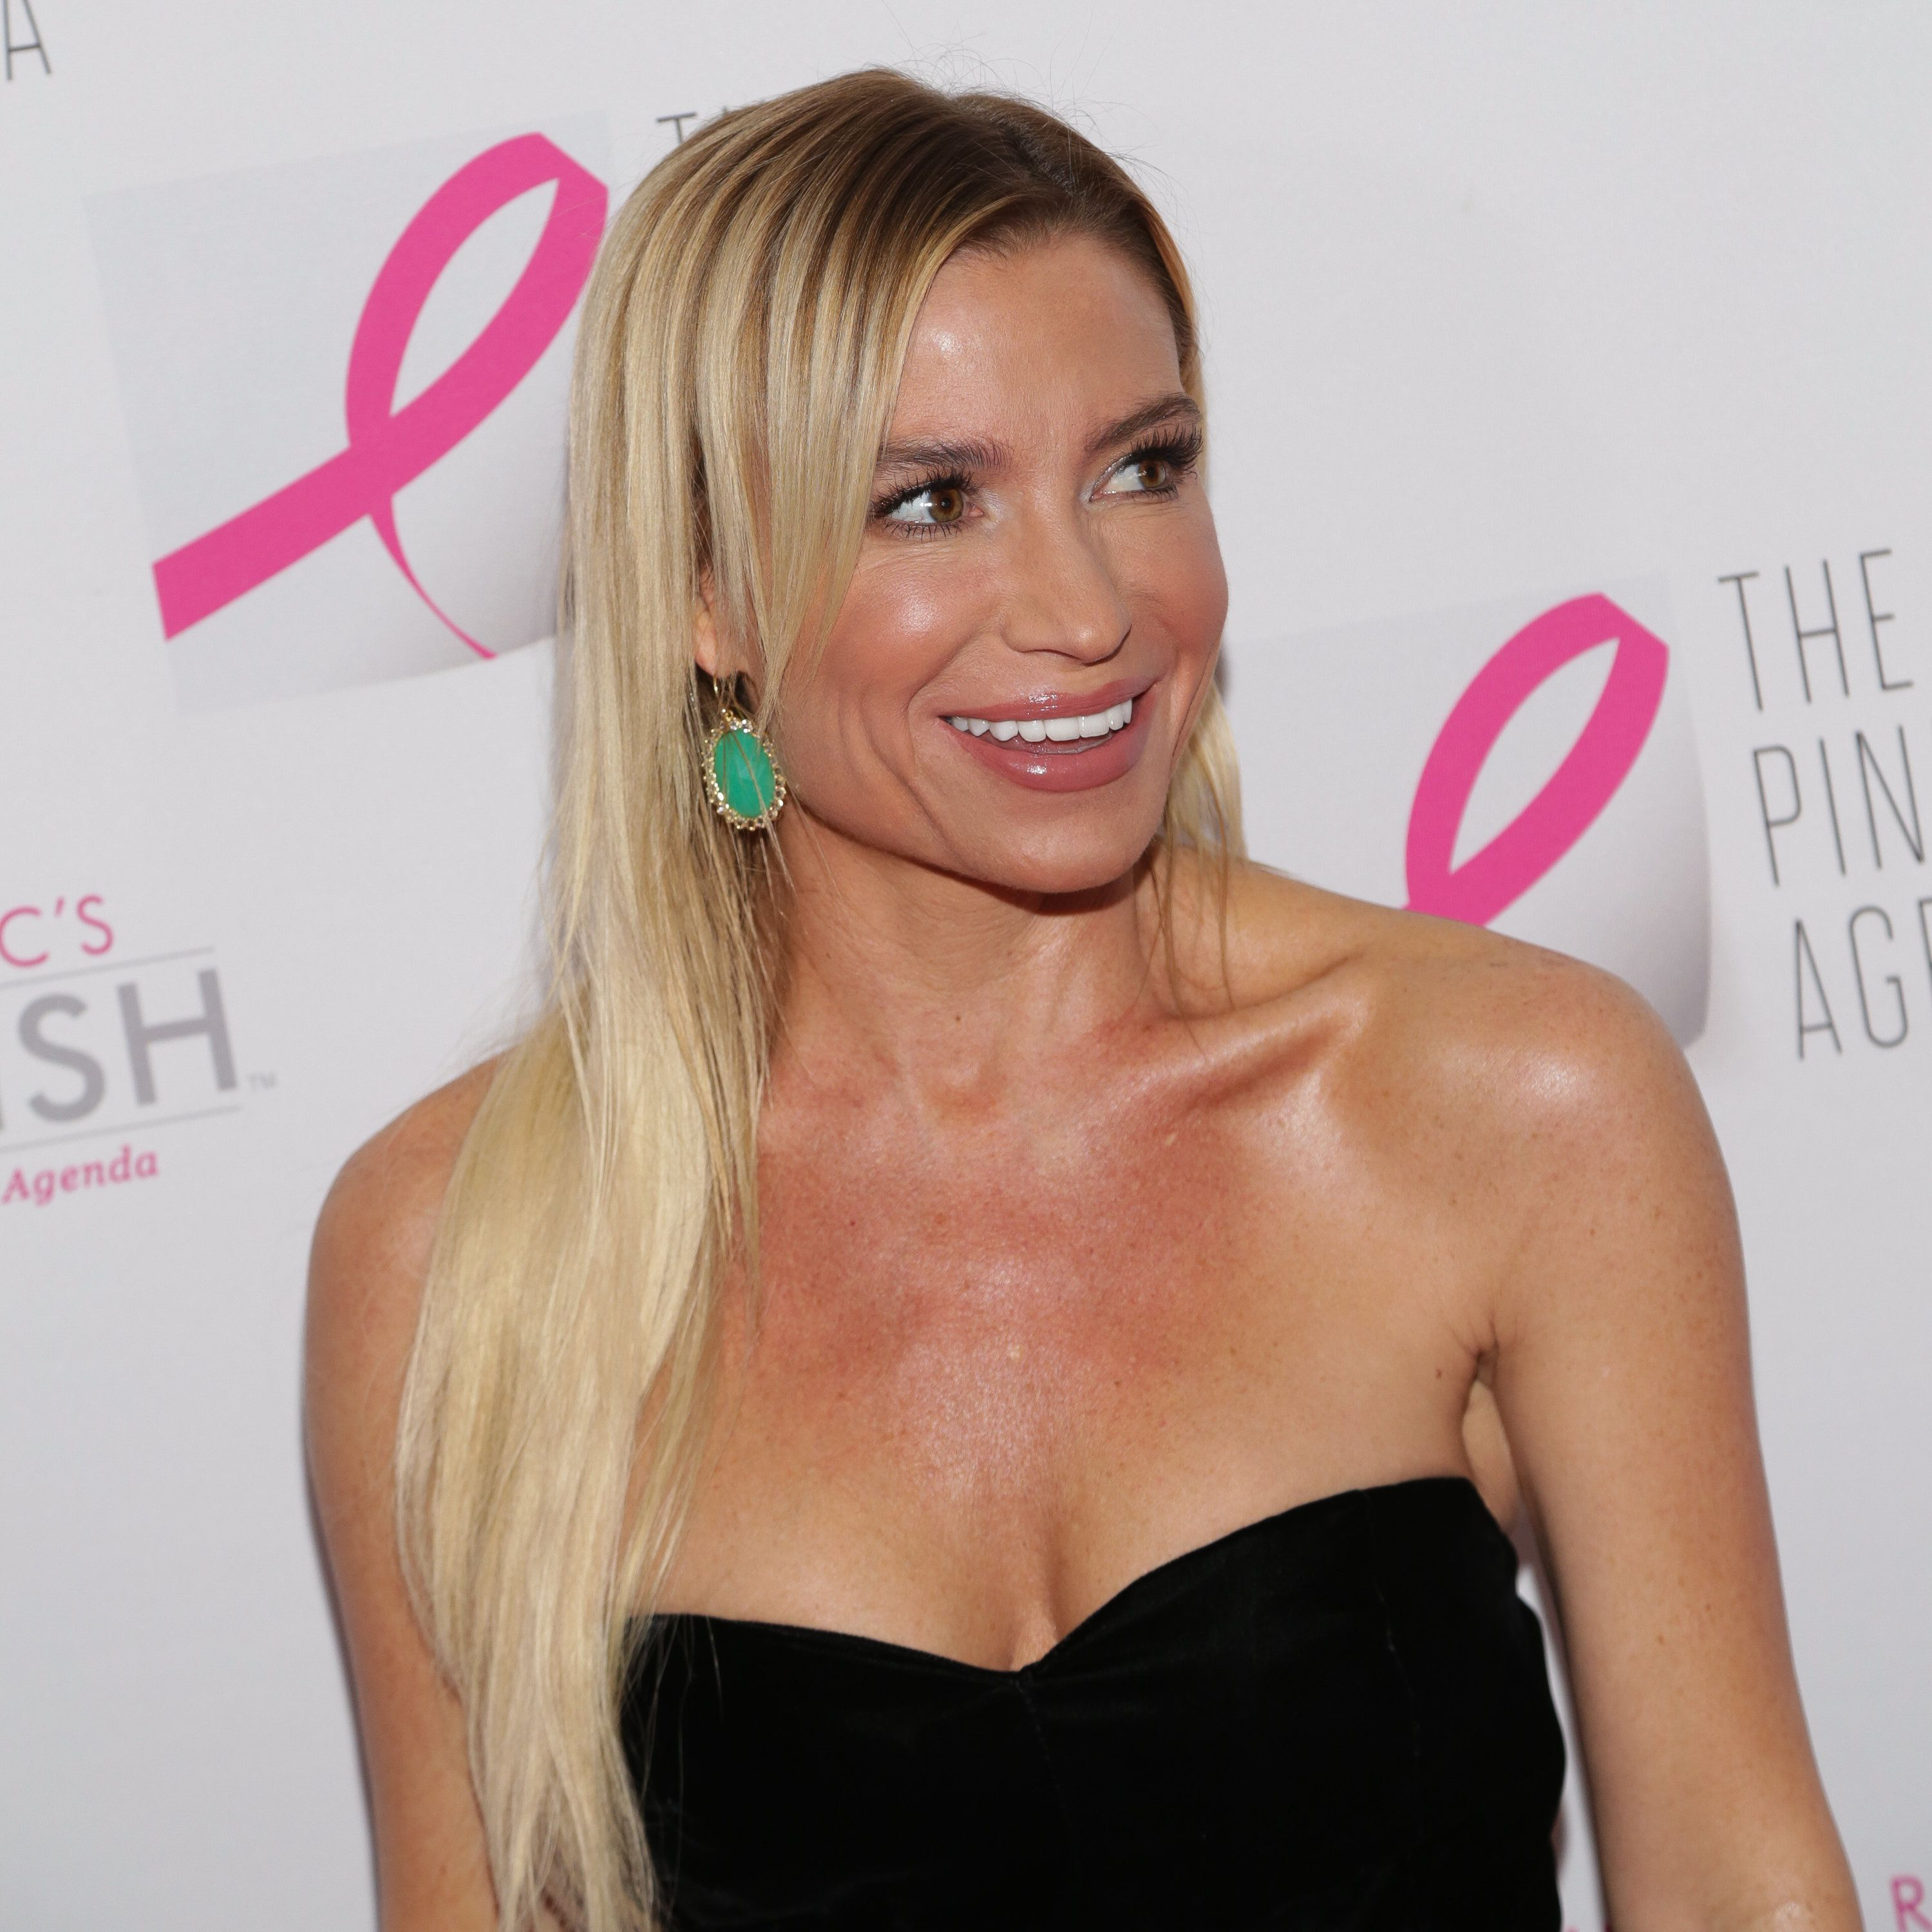 NEW YORK, NY - OCTOBER 13:  Fitness/wellness expert and Lisa Mae Lee award recipient Tracy Anderson attends The Pink Agenda's 2016 Gala held at Three Sixty on October 13, 2016 in New York City.  (Photo by Brent N. Clarke/FilmMagic)